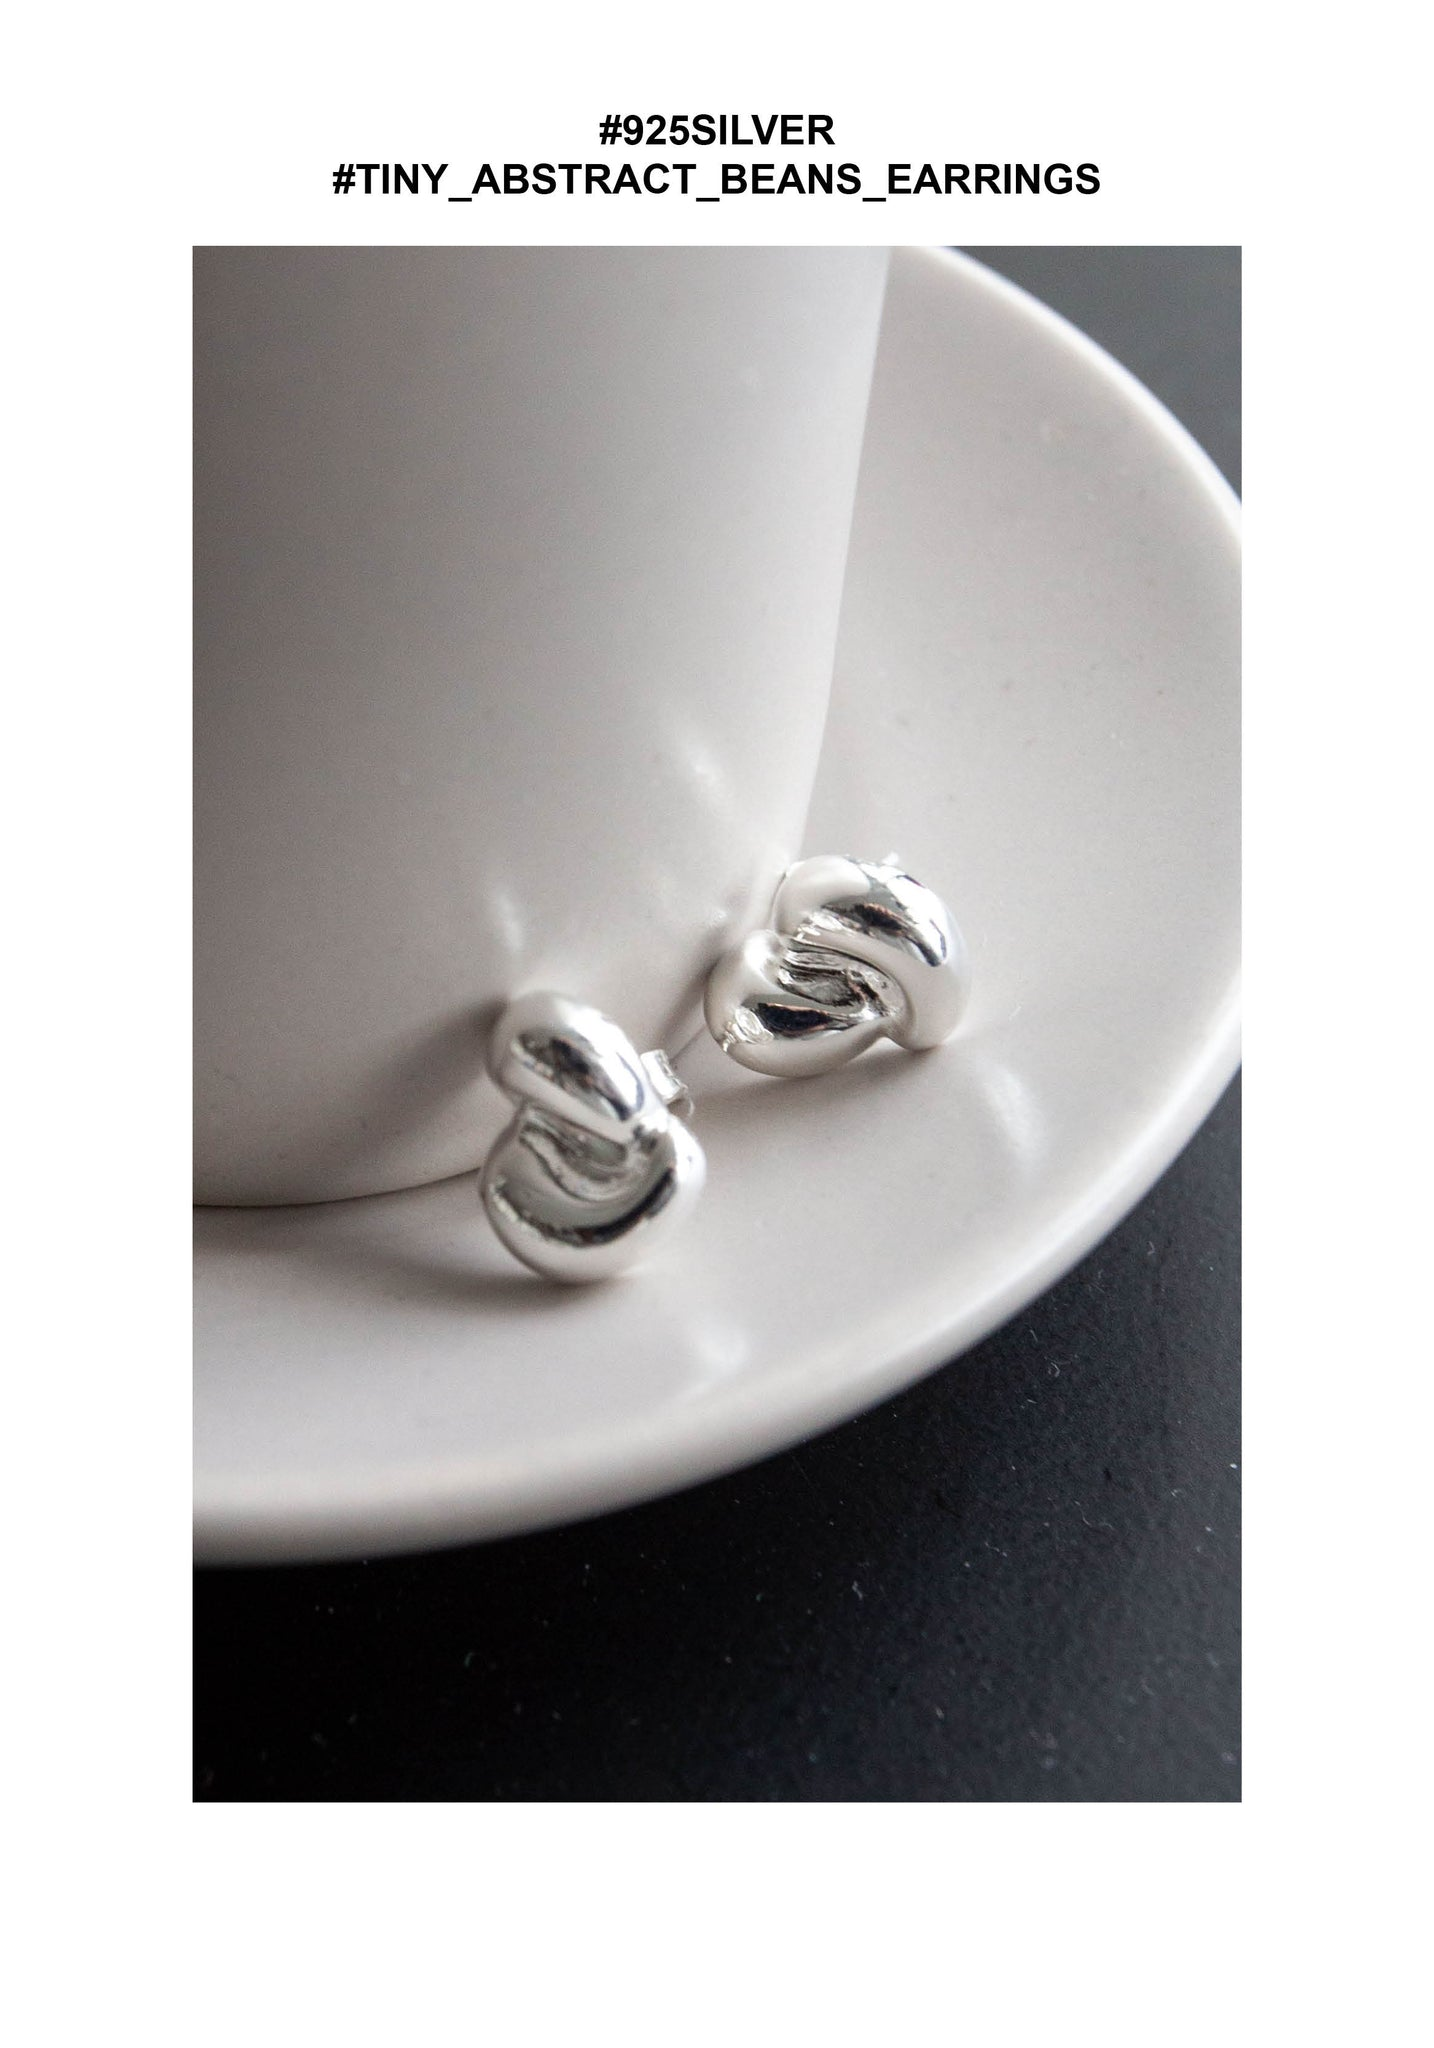 925 Silver Tiny Abstract Beans Earrings